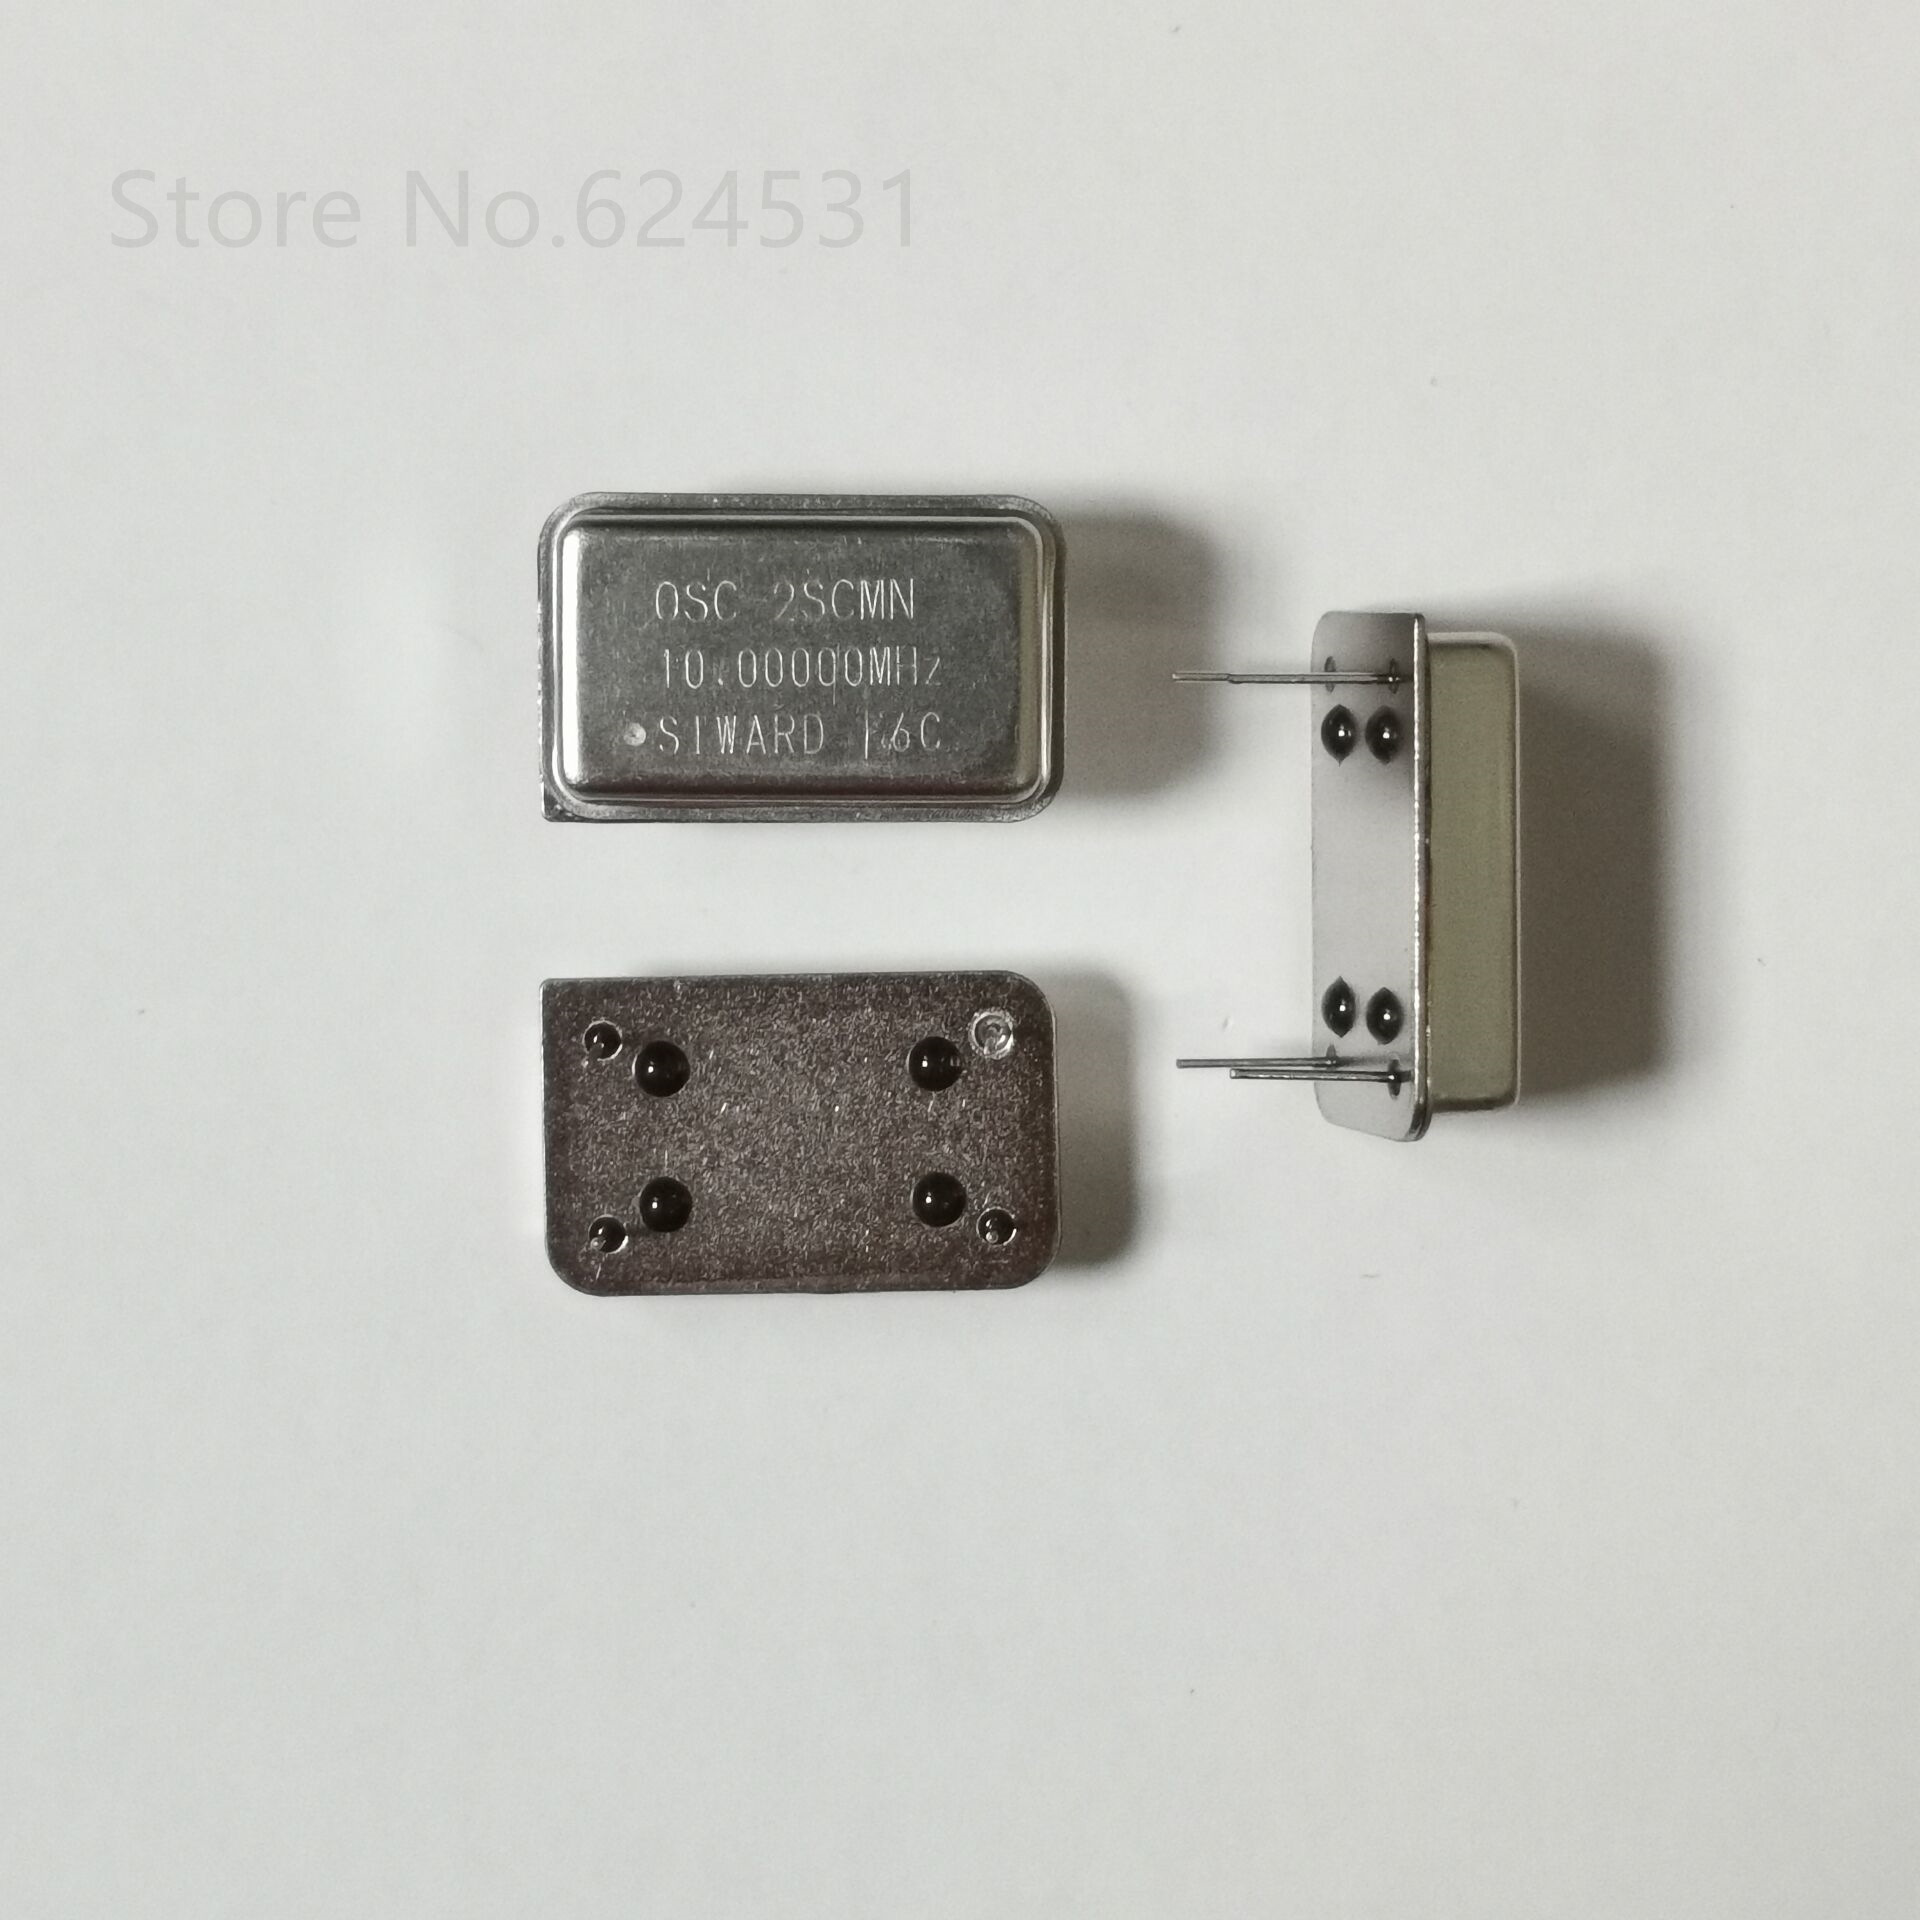 5pcs In-line Active Crystal OSC DIP-4 Rectangular Clock Vibration Full Size 10M 10MHZ 10.000MHZ